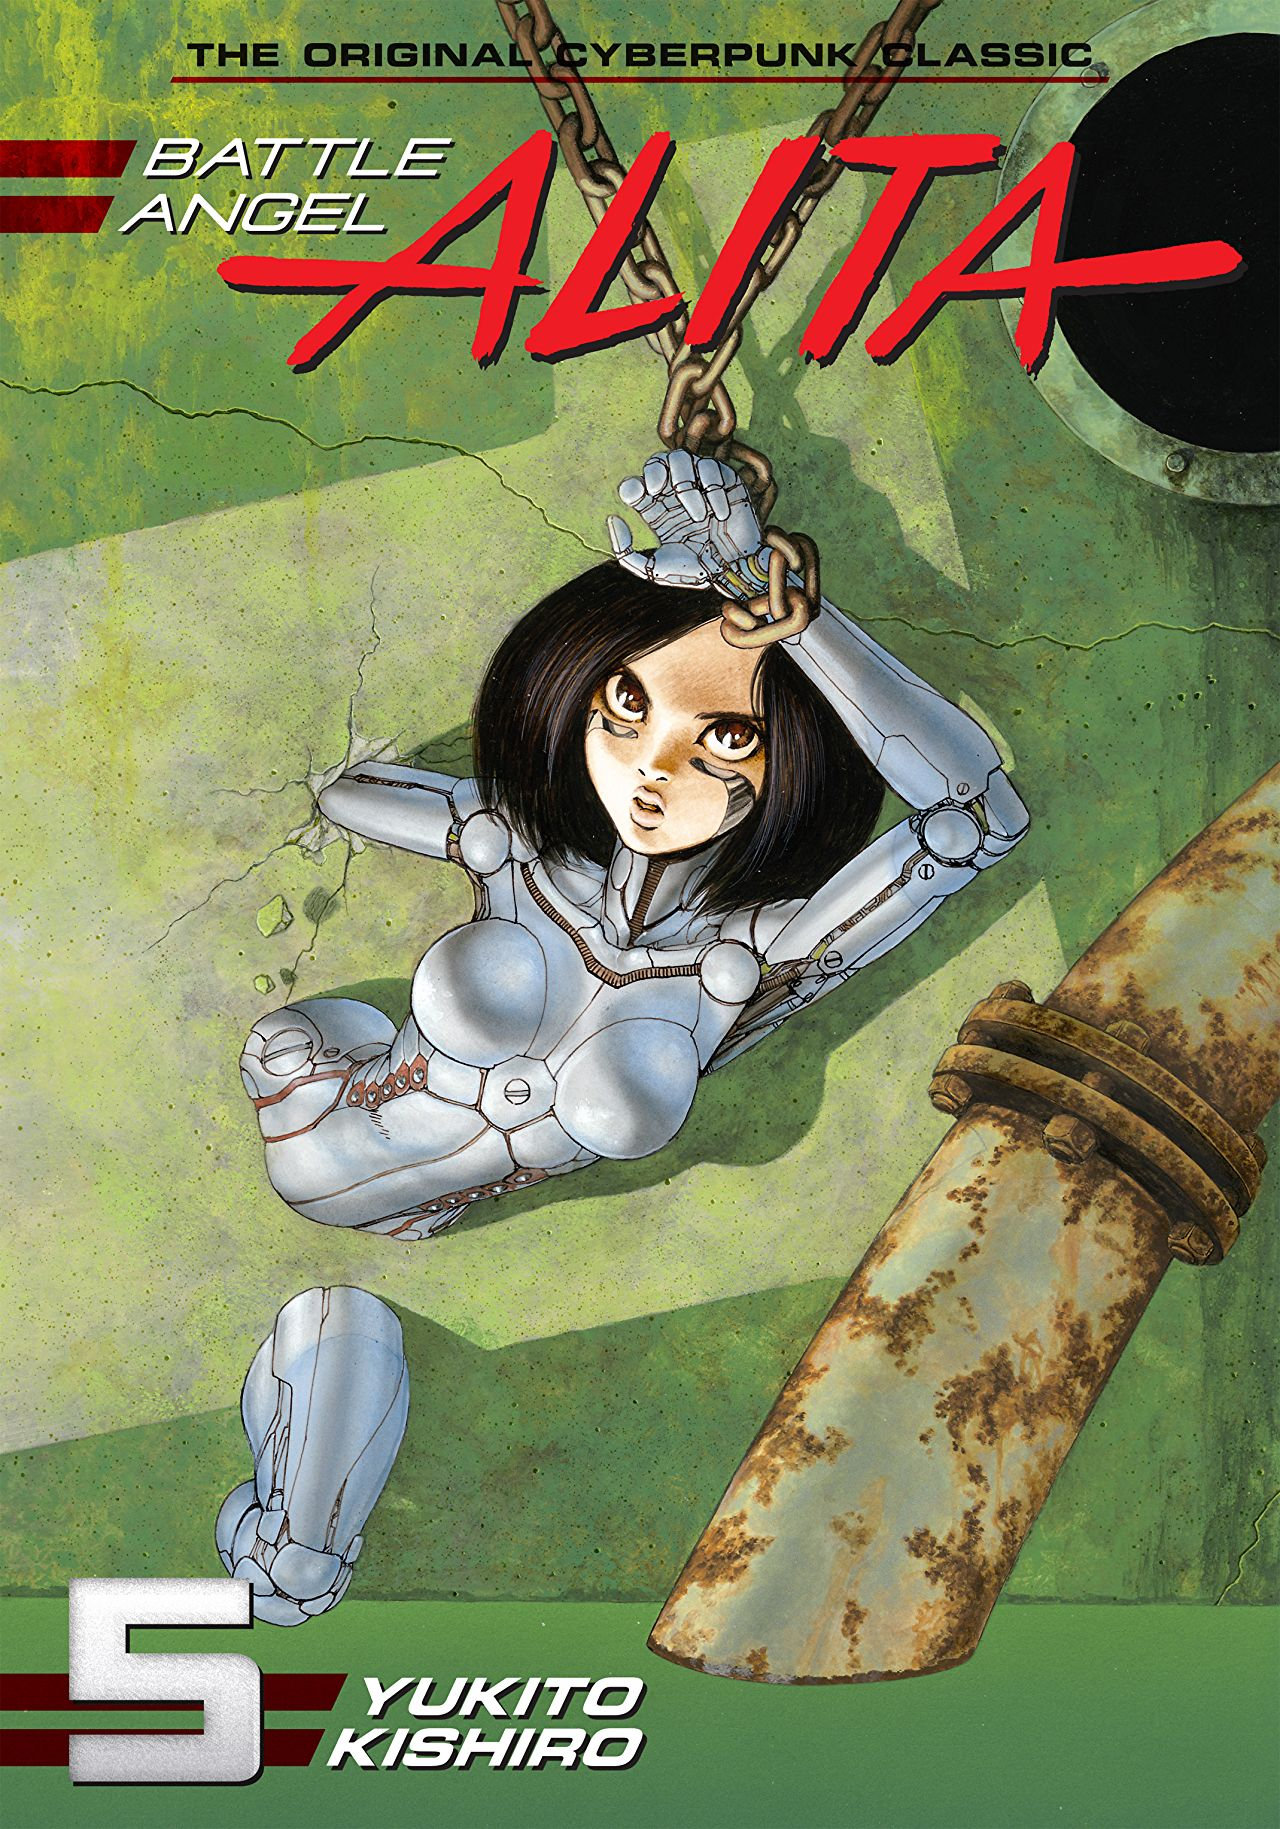 Alita must fight an old enemy, as well as a war in the desert.